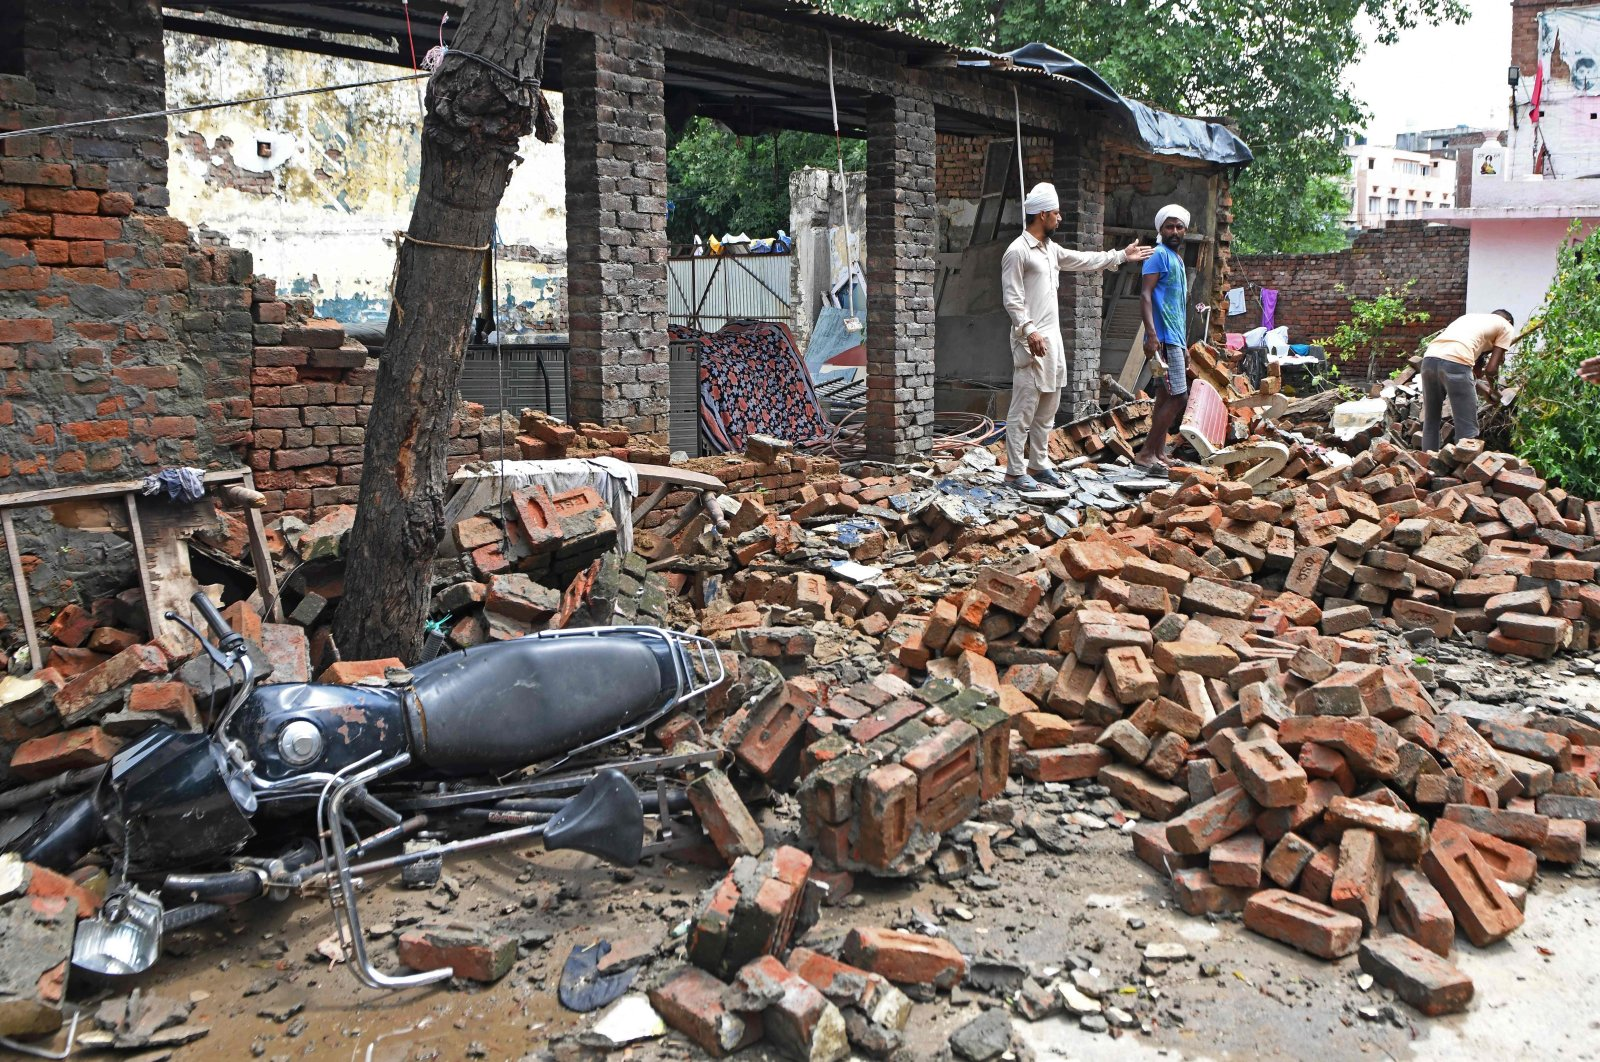 Workers stand amid the debris of a collapsed house wall after heavy monsoon rains, Amritsar, northwestern India, July 30, 2020. (AFP Photo)